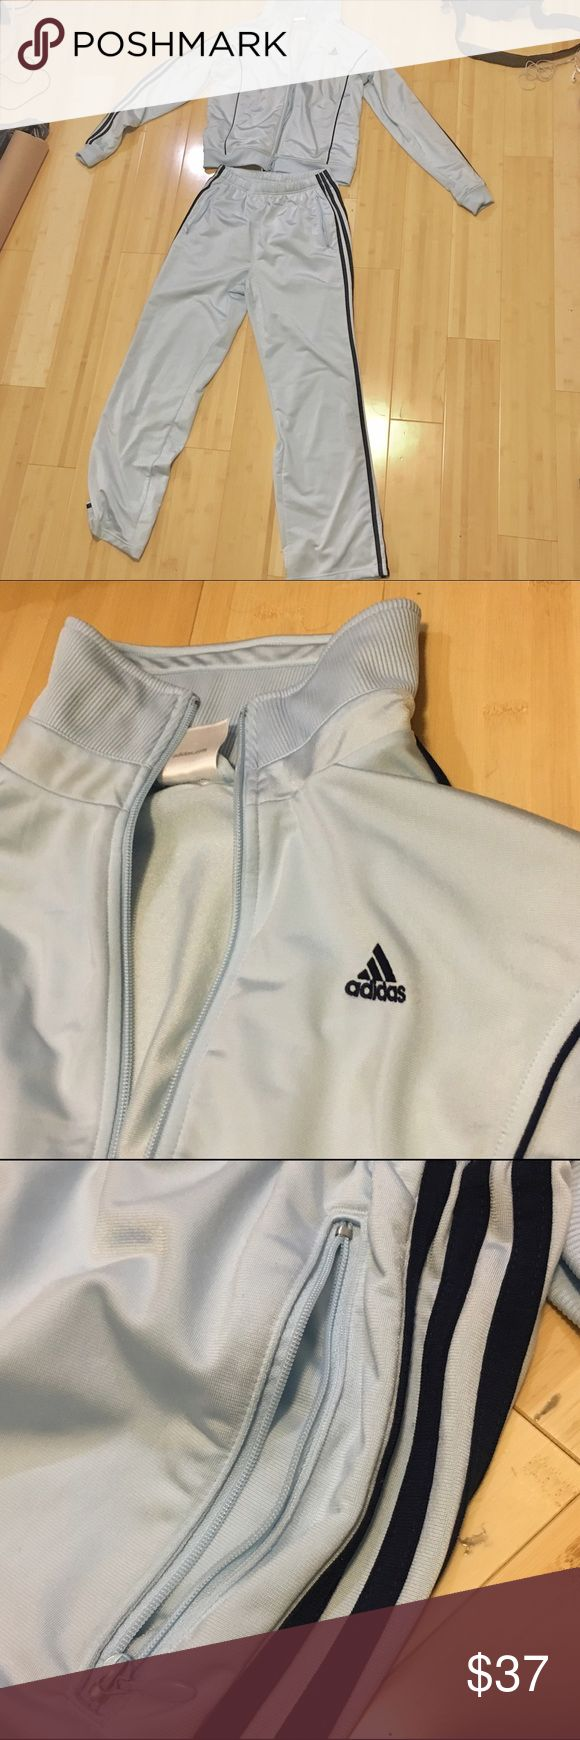 1000+ ideas about Adidas Tracksuit on Pinterest   Nylons ...